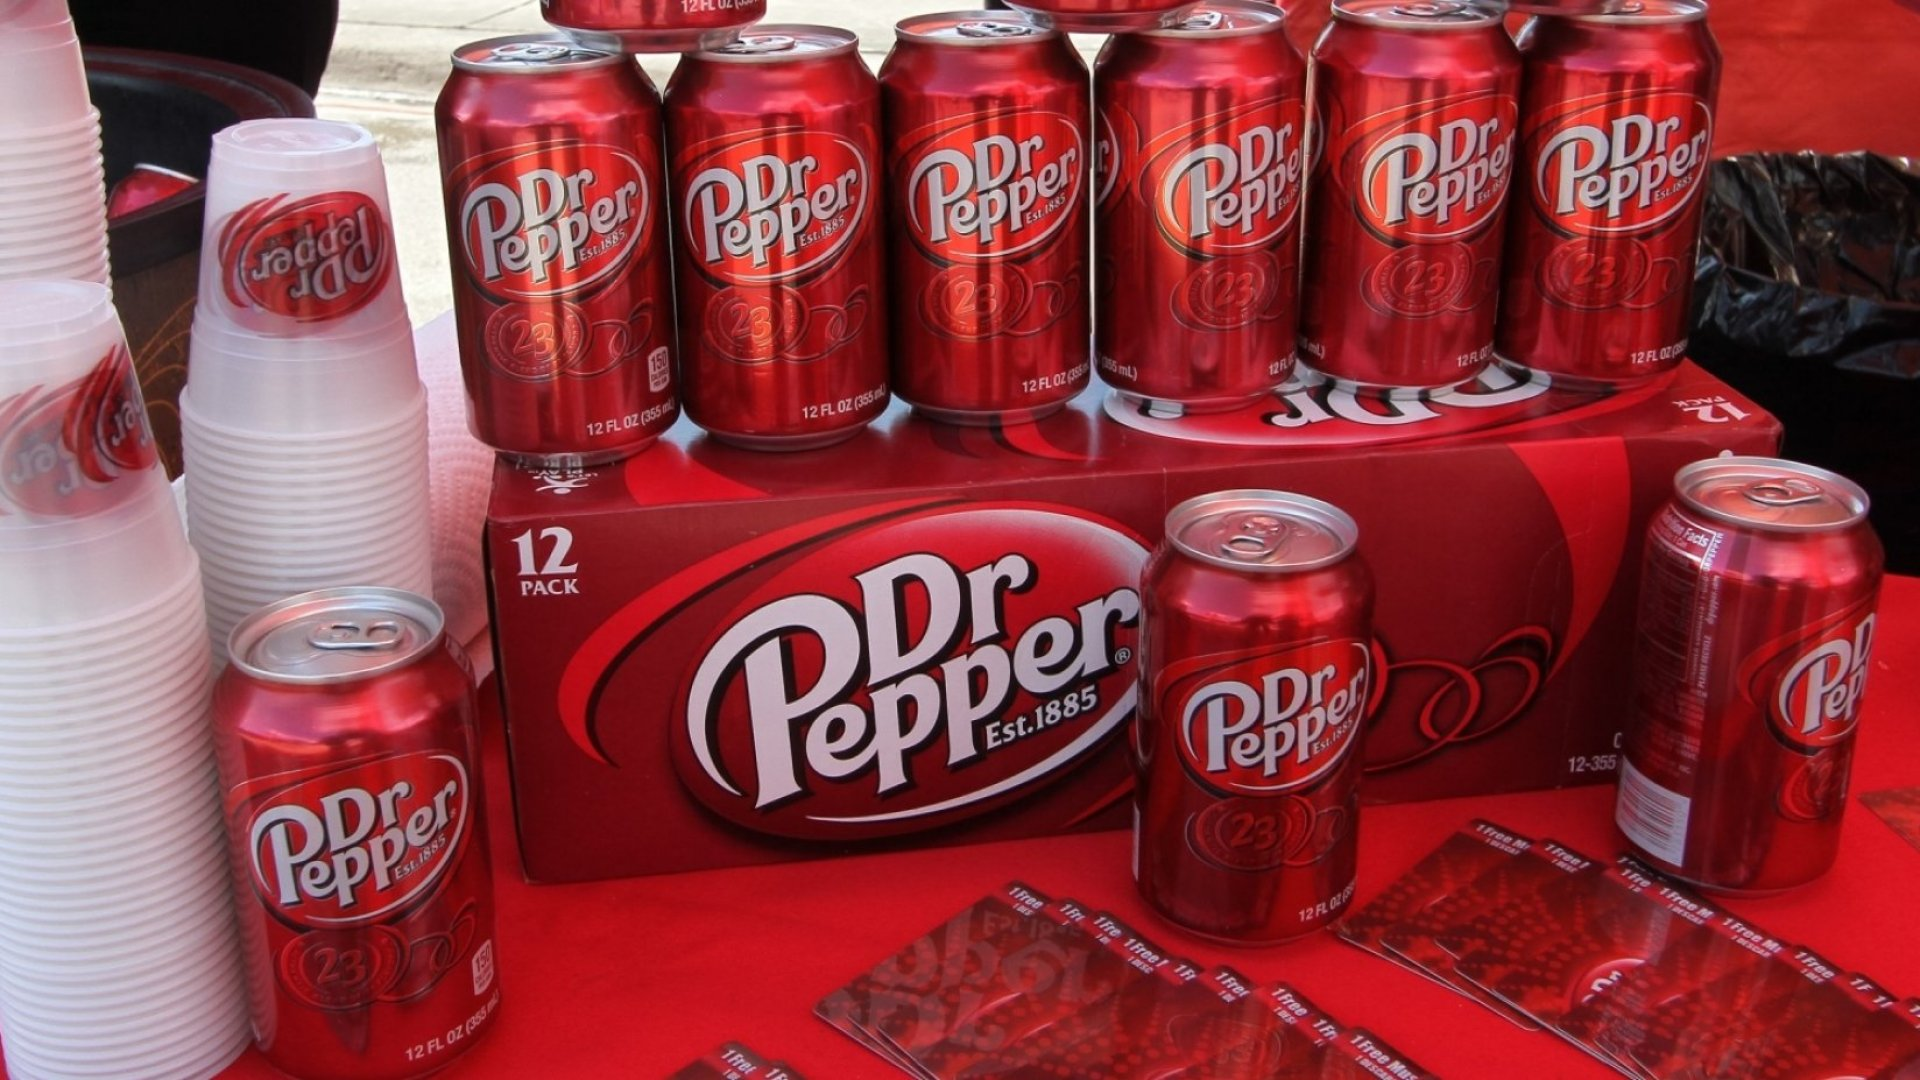 Dr Pepper Snapple Group Acquires Bai Brands for $1.7 Billion